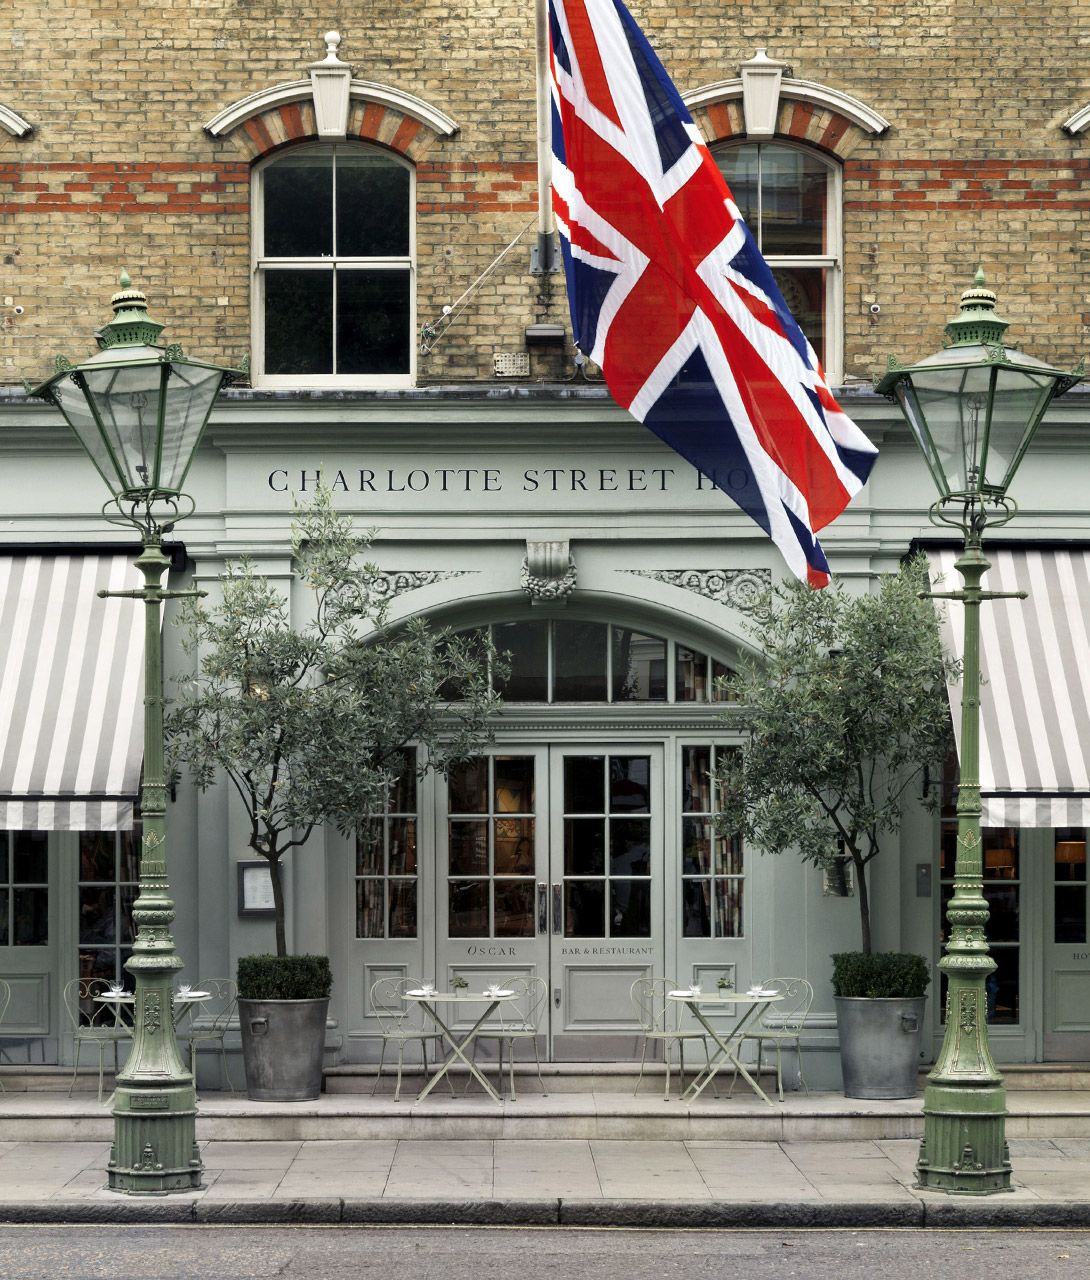 Charlotte Street Hotel Architecture in London